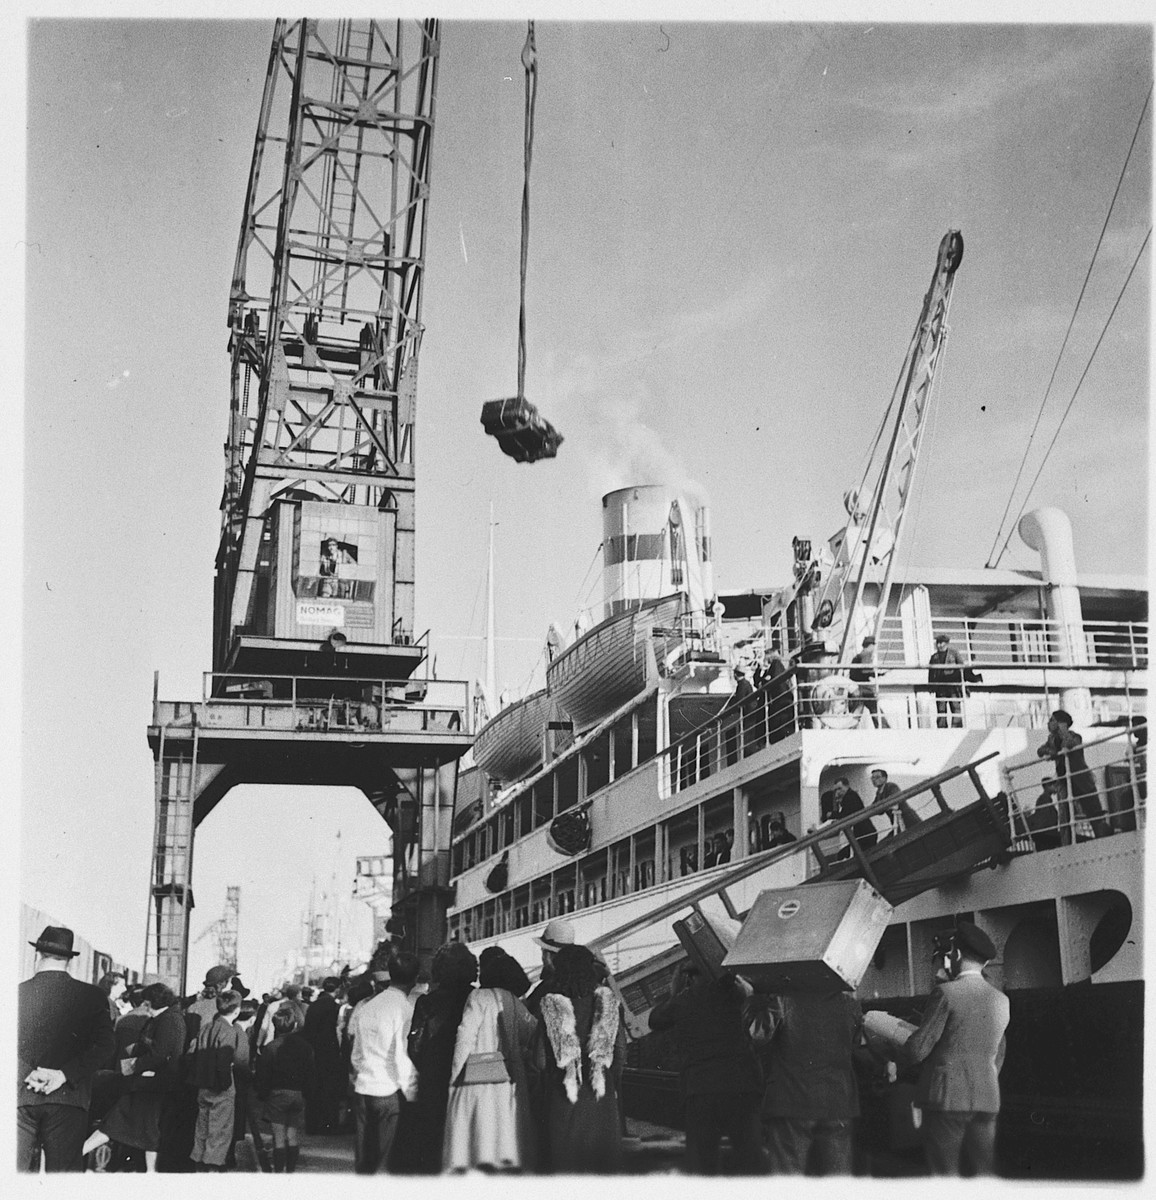 Jewish refugees watch as a crane is used to load their luggage onto the SS Serpa Pinto in the port of Lisbon.